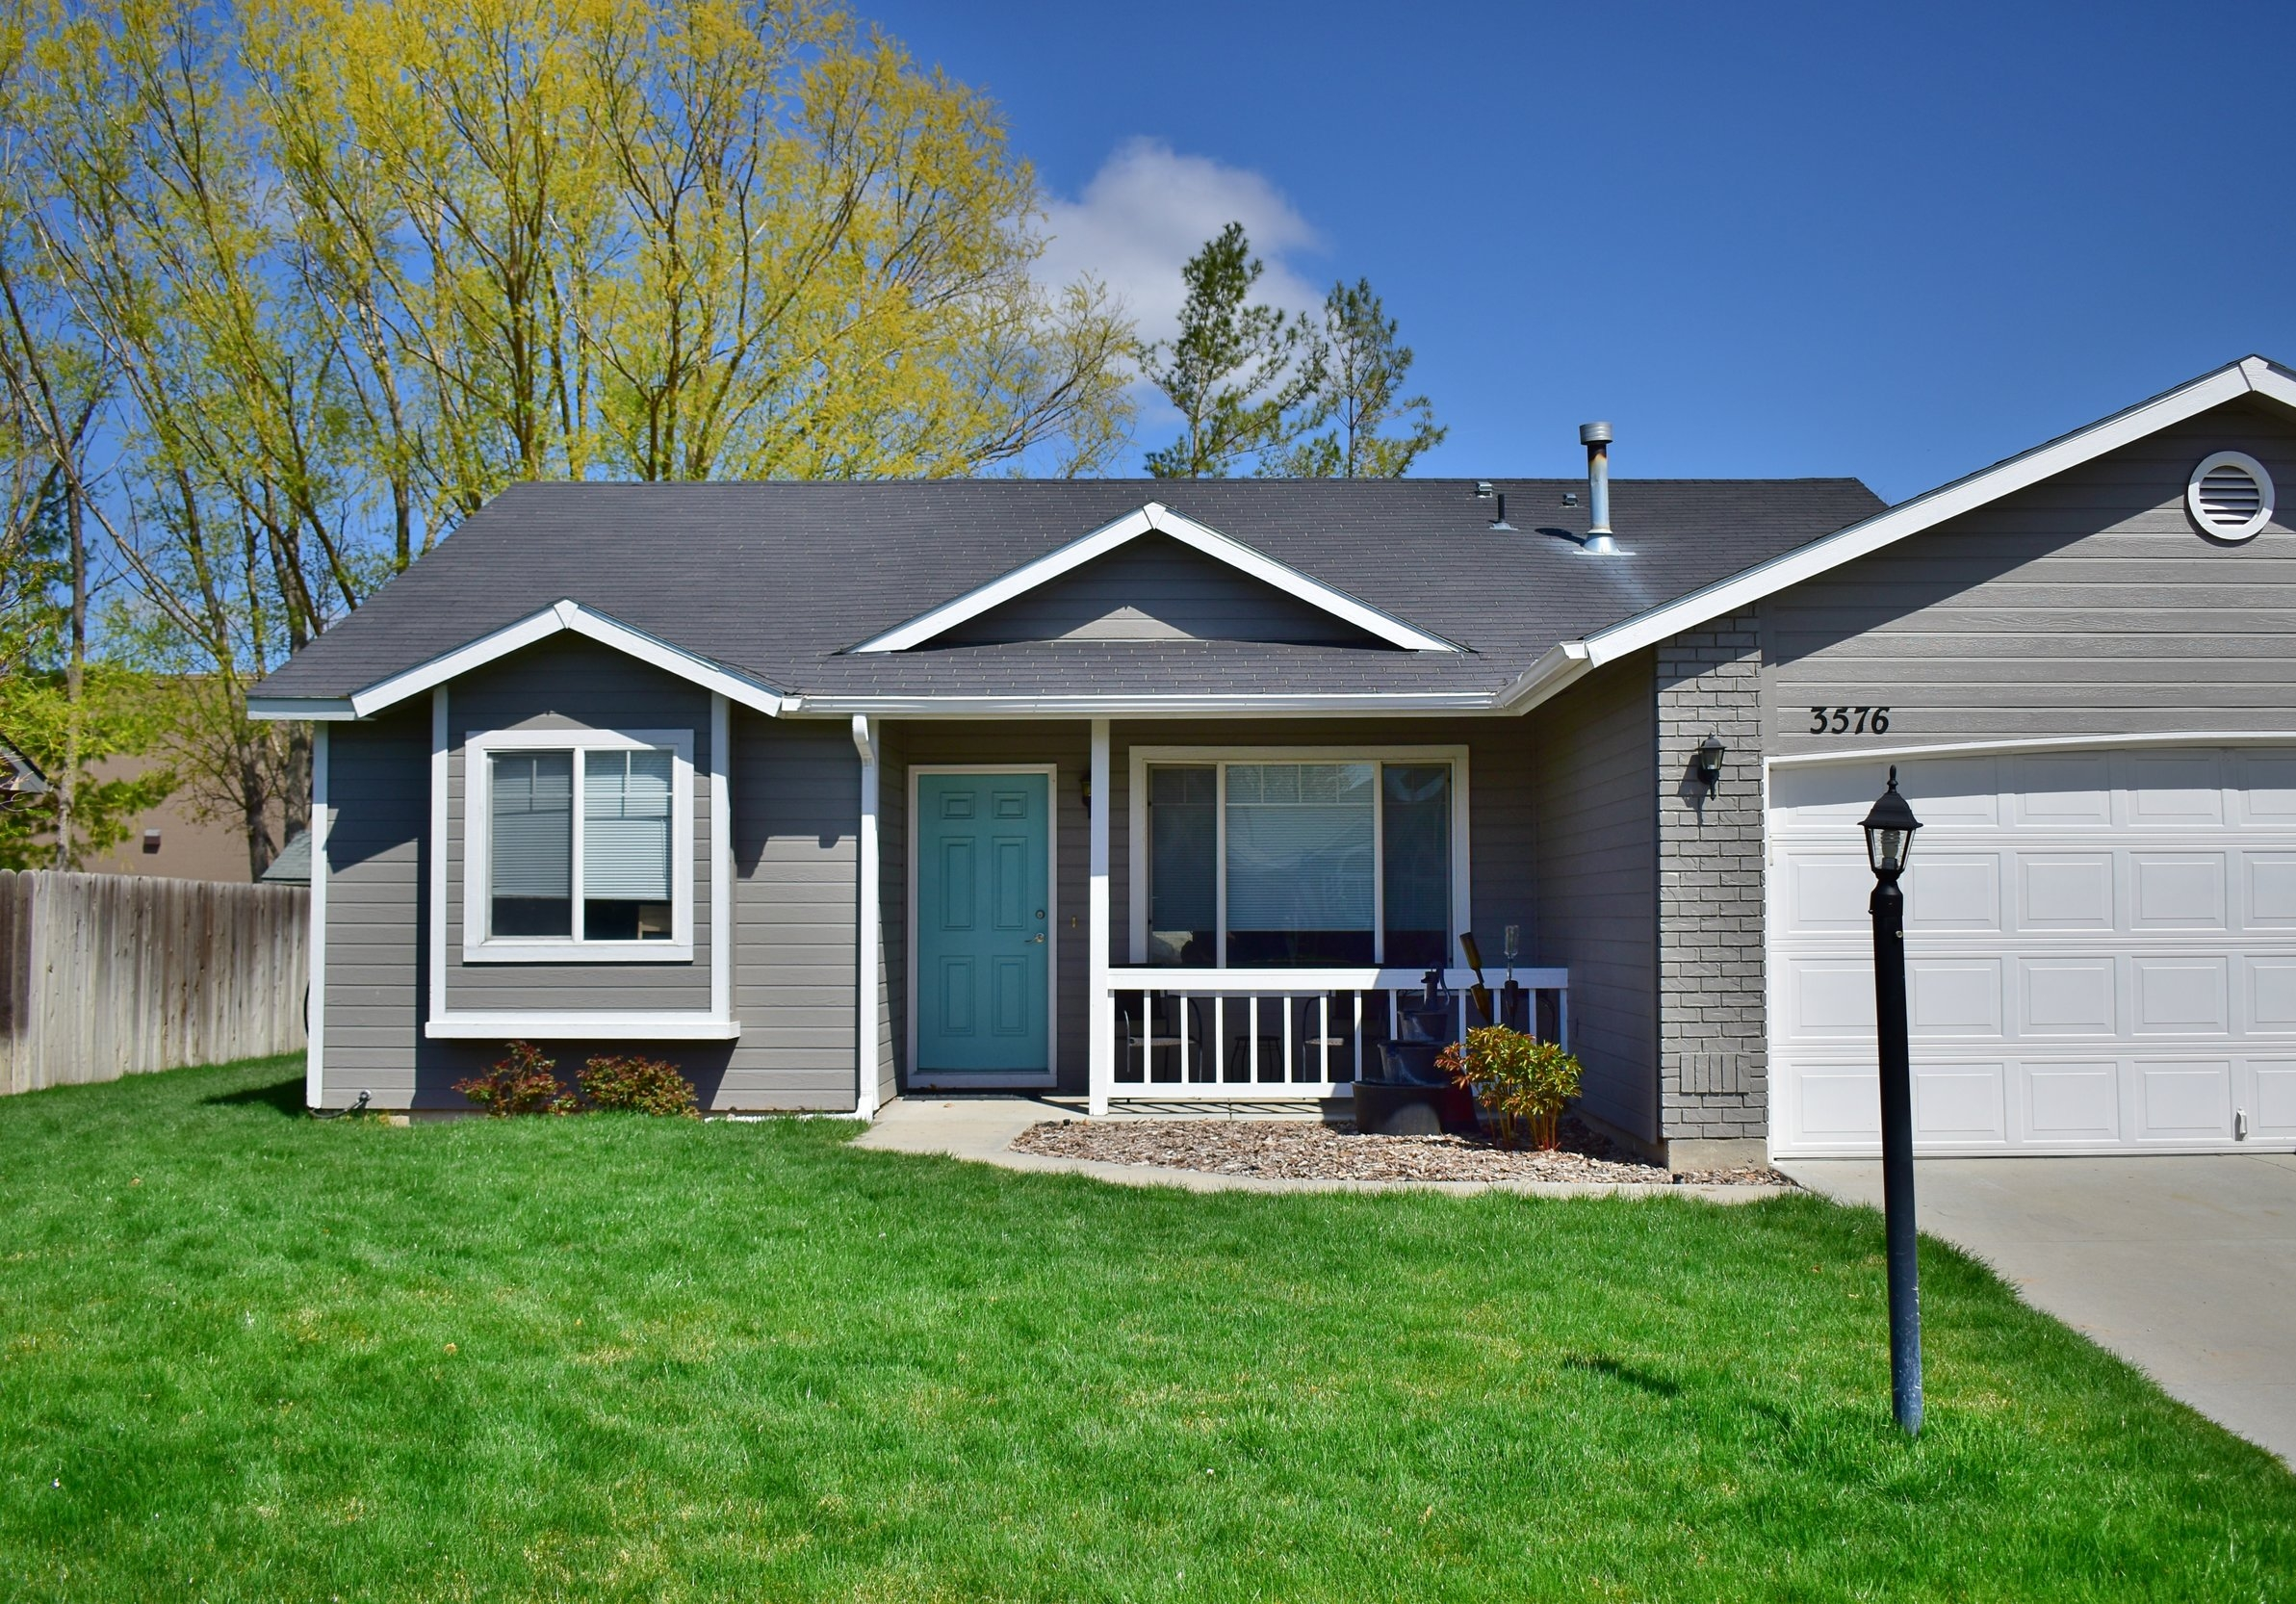 Off Market Deal Purchased with $1,000 Down!